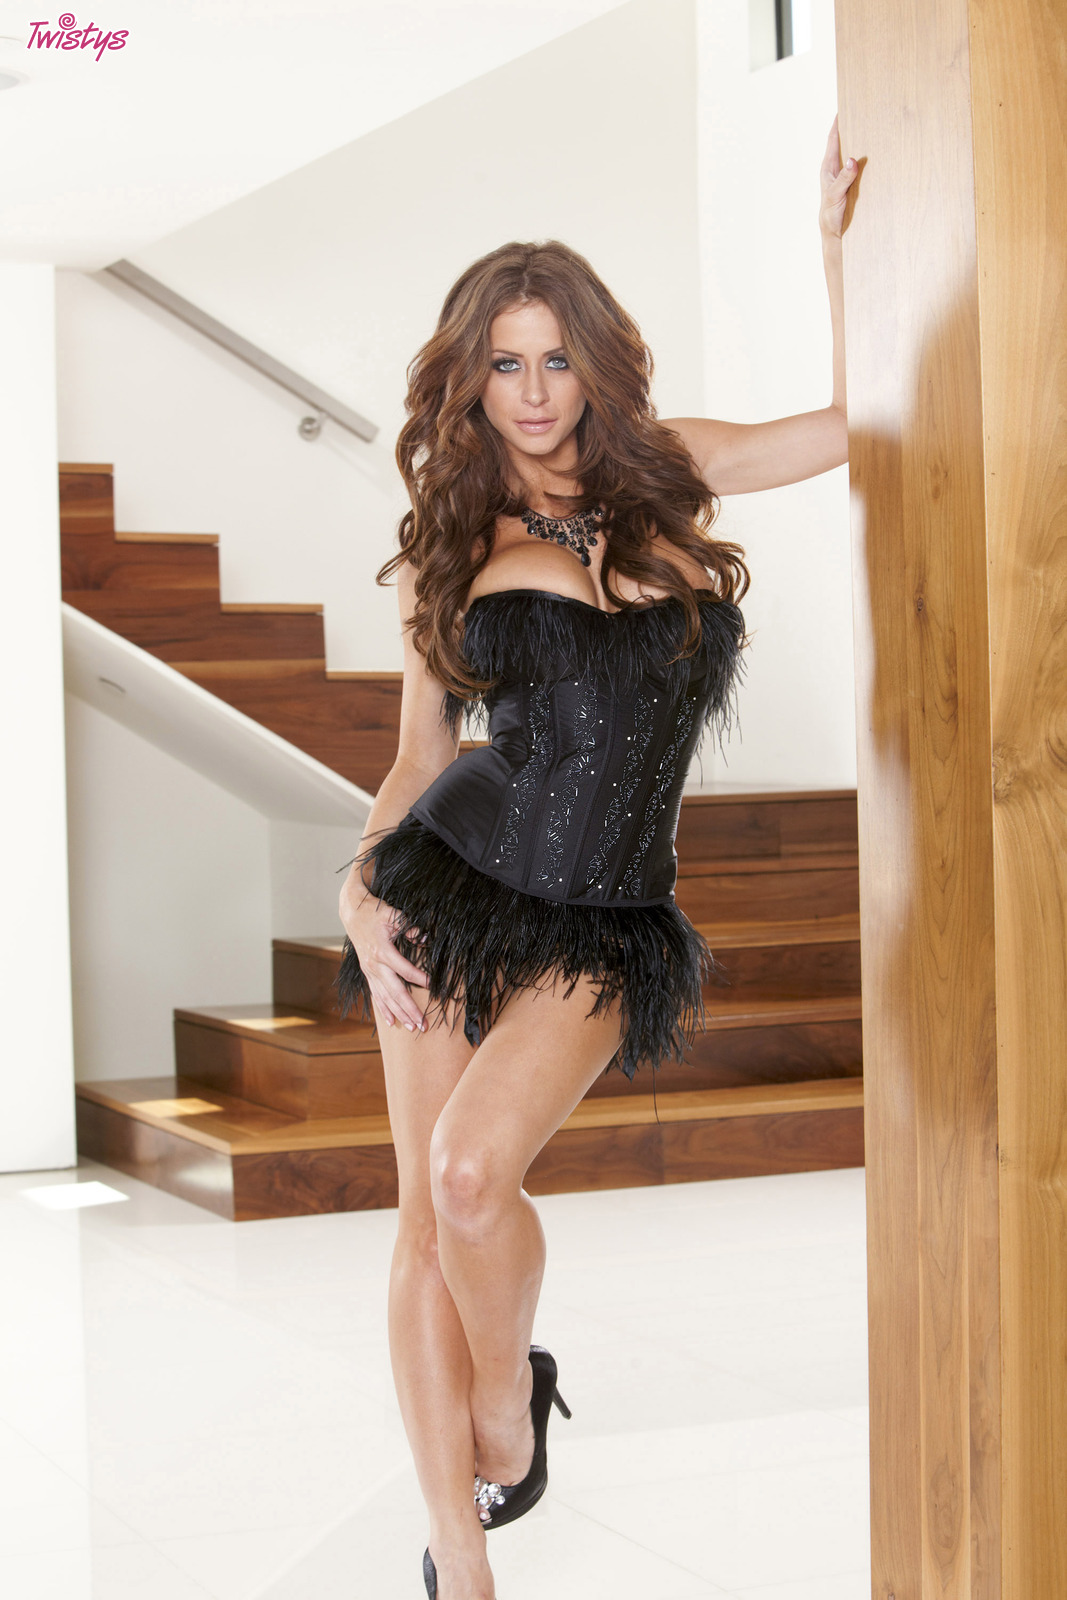 Emily Addison - Too Hot To Handle photos